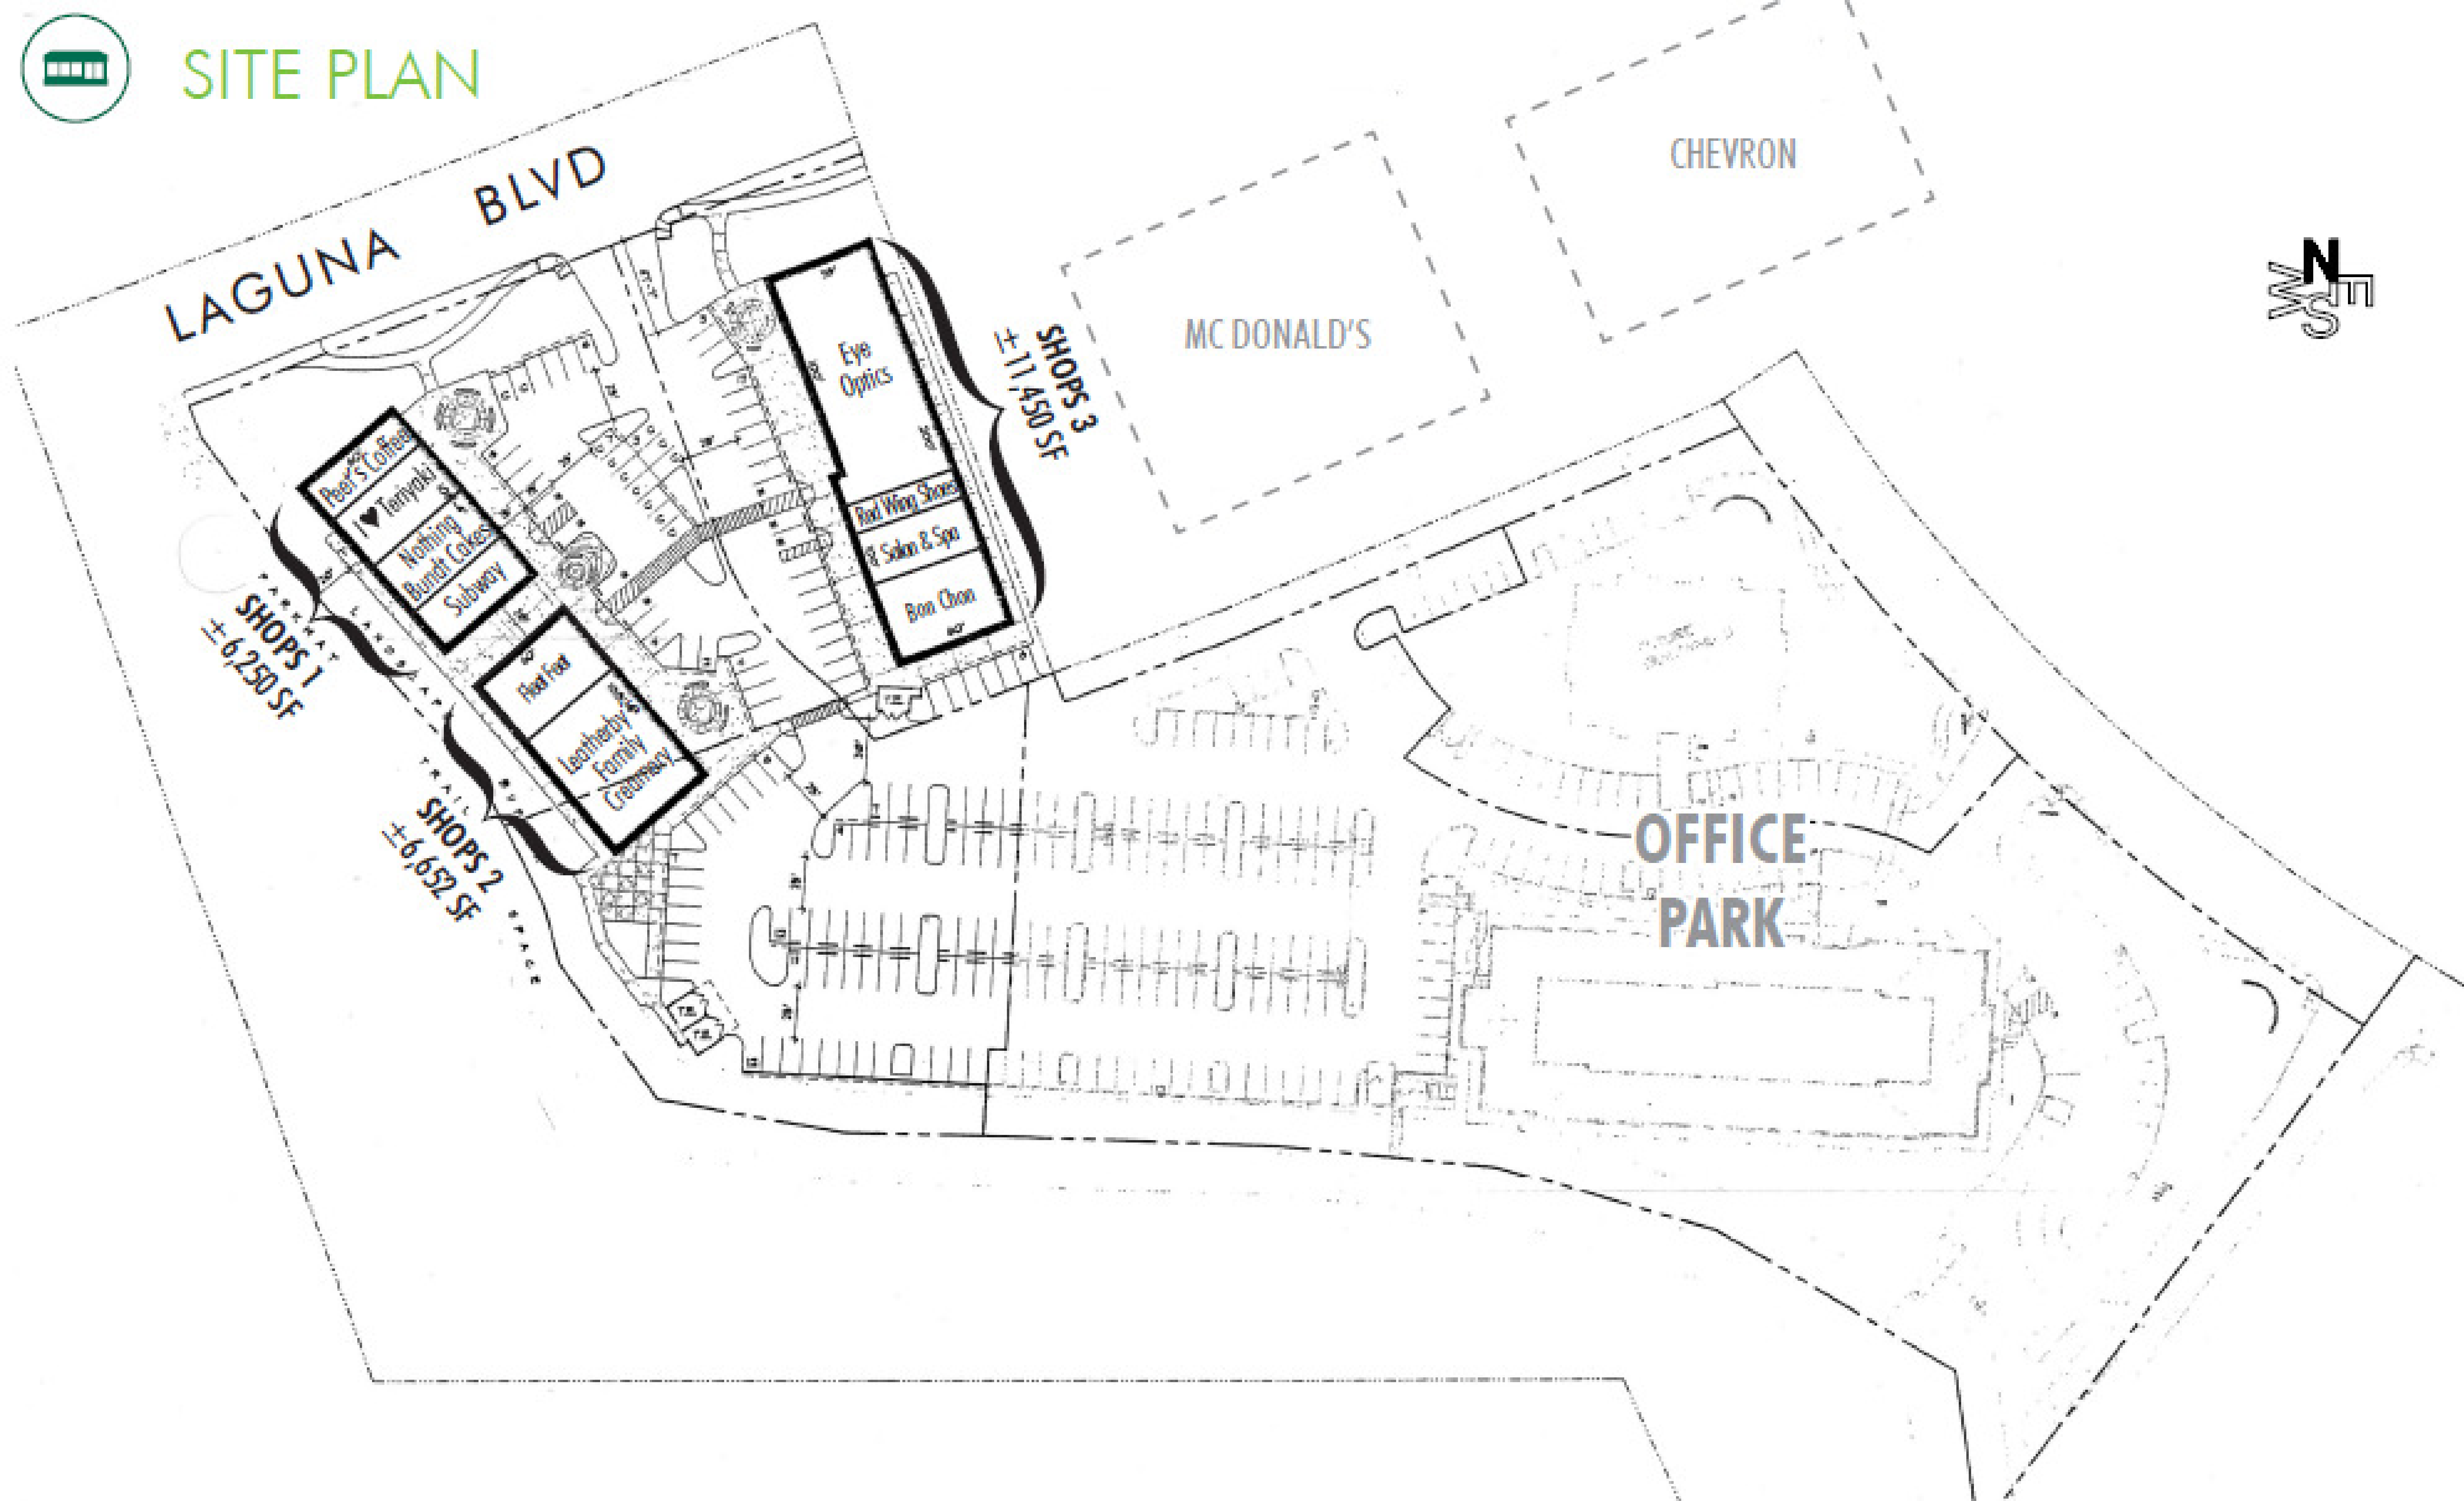 Laguna Gateway South: site plan